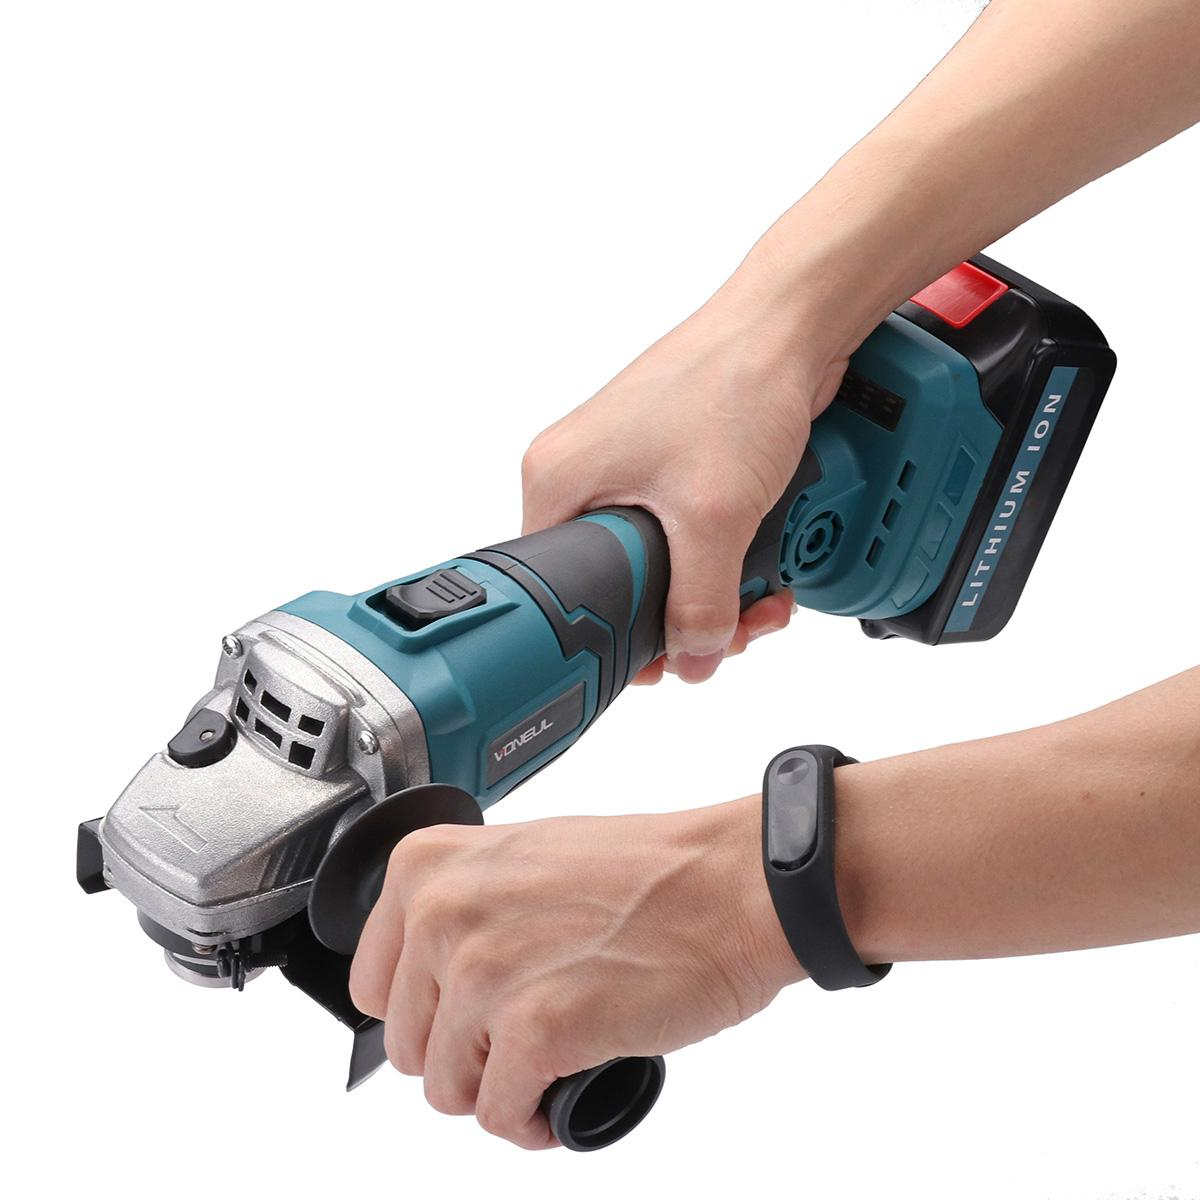 Cordless Angle Grinder 48V 128tv/29800mA Lithium-Ion Grinding Machine Cutting Electric Angle Grinder Grinding / Chainsaw Bracket